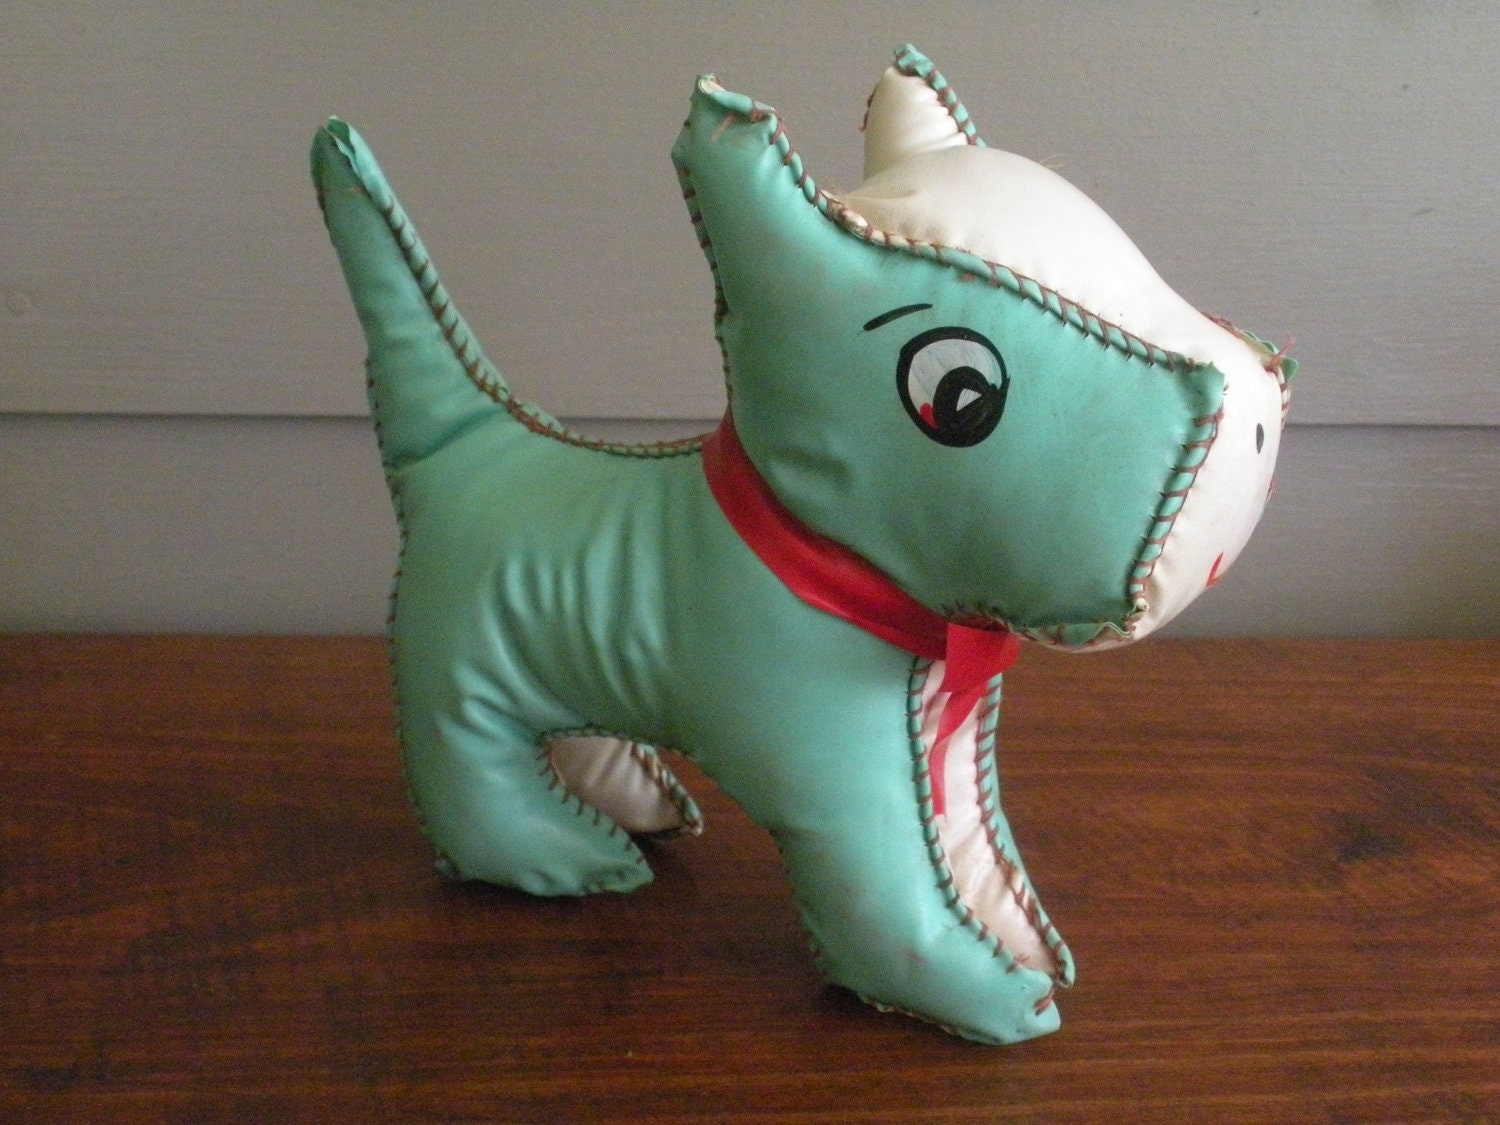 Vintage 1940s Faux-Leather Aqua and White Scottie Dog Toy - Swansdowne